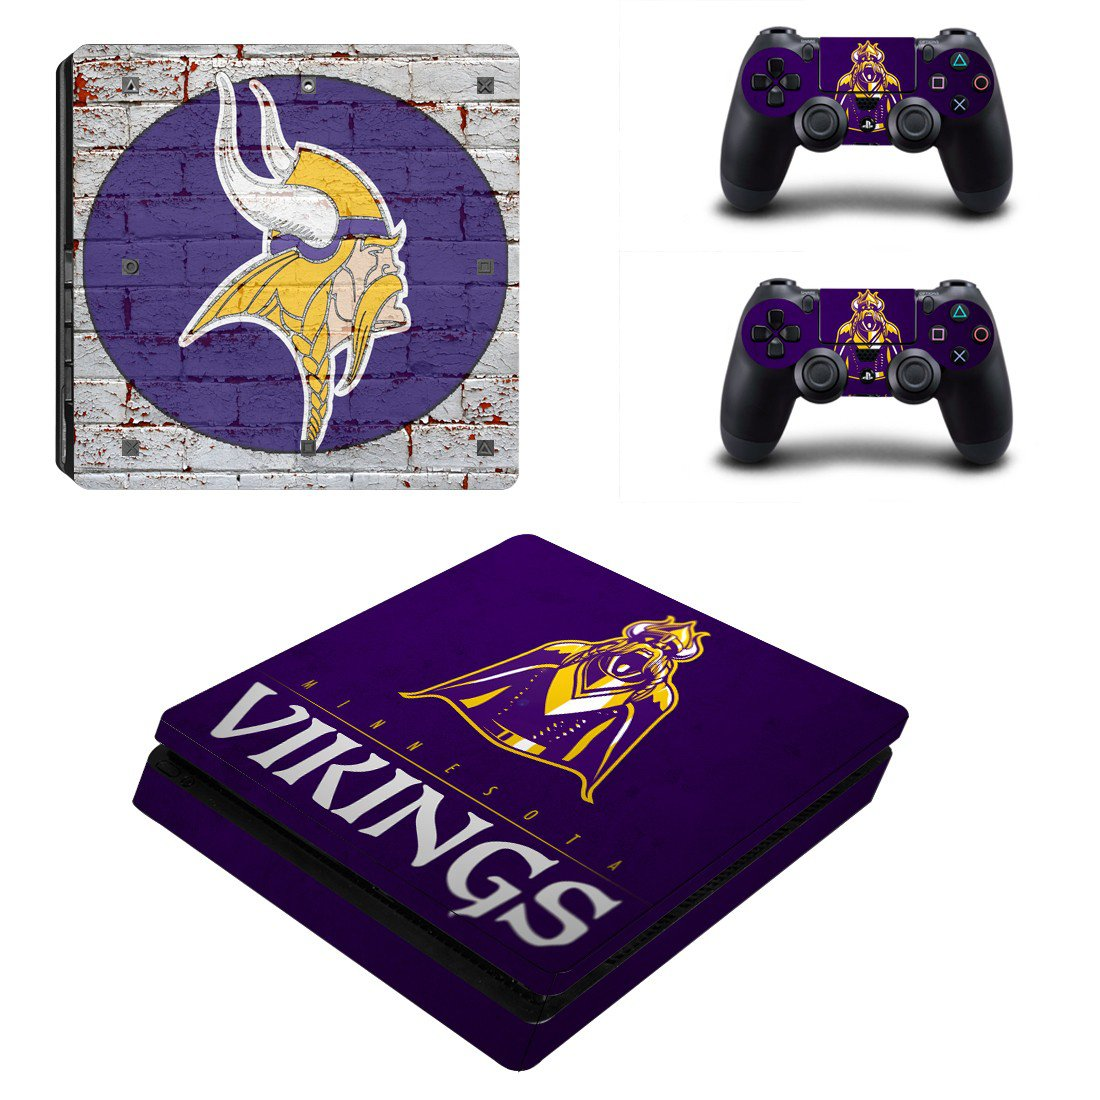 Minnesota Vikings Play Station 4 slim skin decal for console and 2 controllers